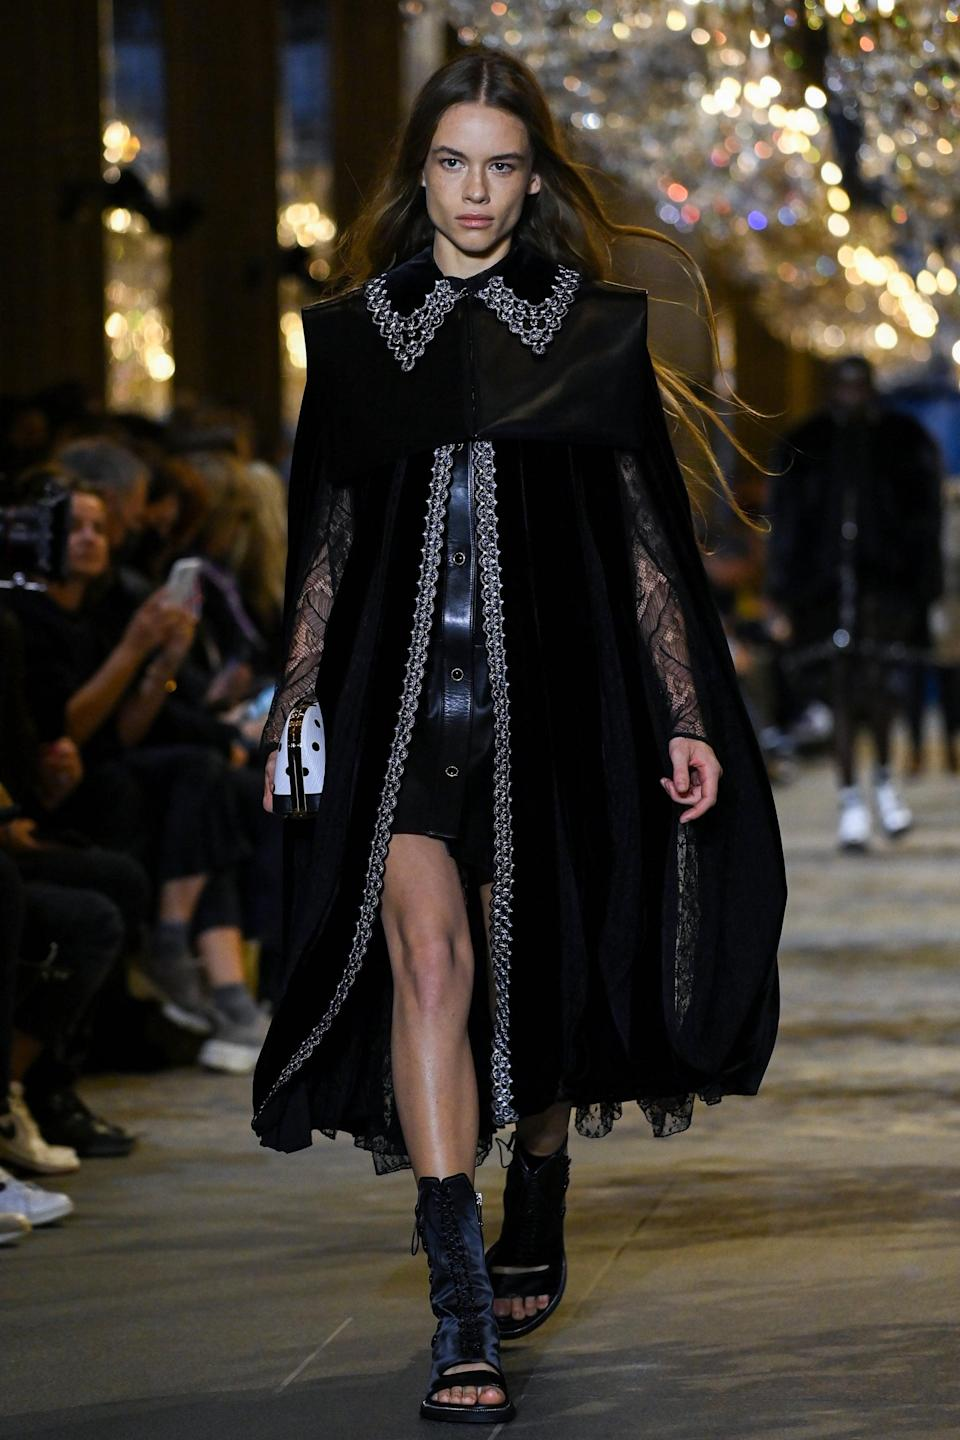 <p>This is amazing in a Hermione Granger reimagined as goth kind of way.</p>